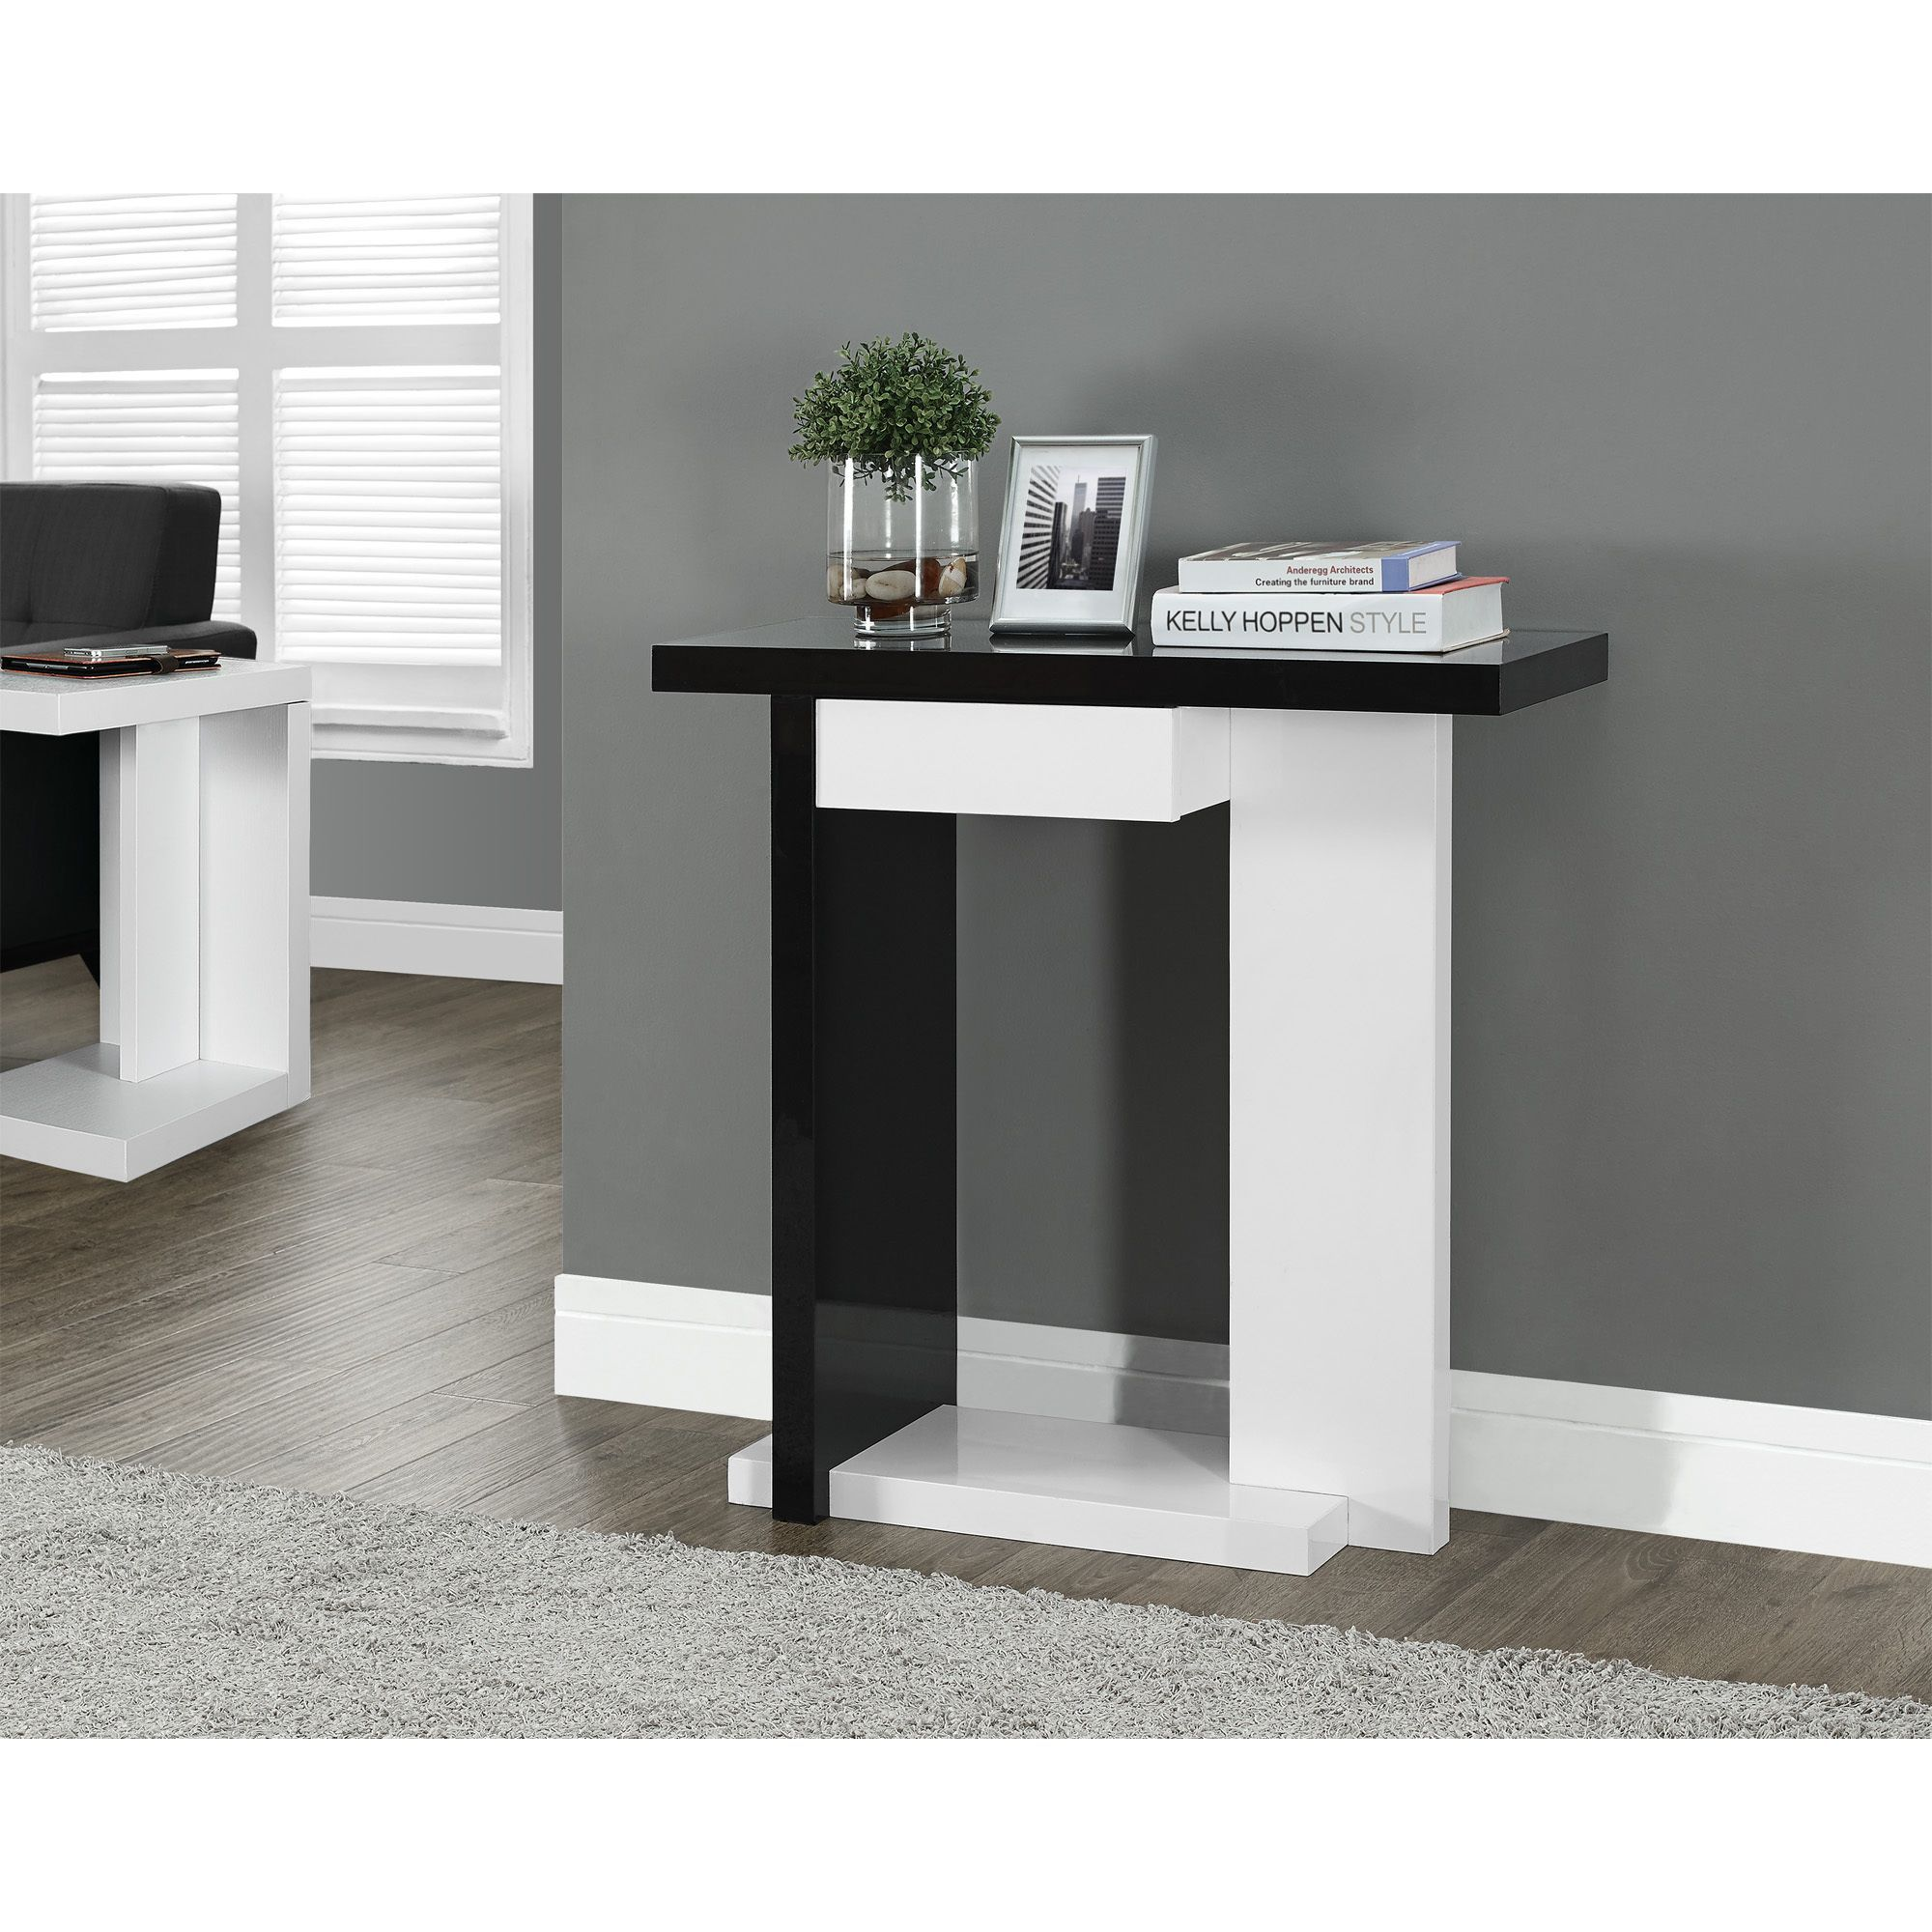 light furniture drawers hallway blog wfs mobel with table console featured oak modern product